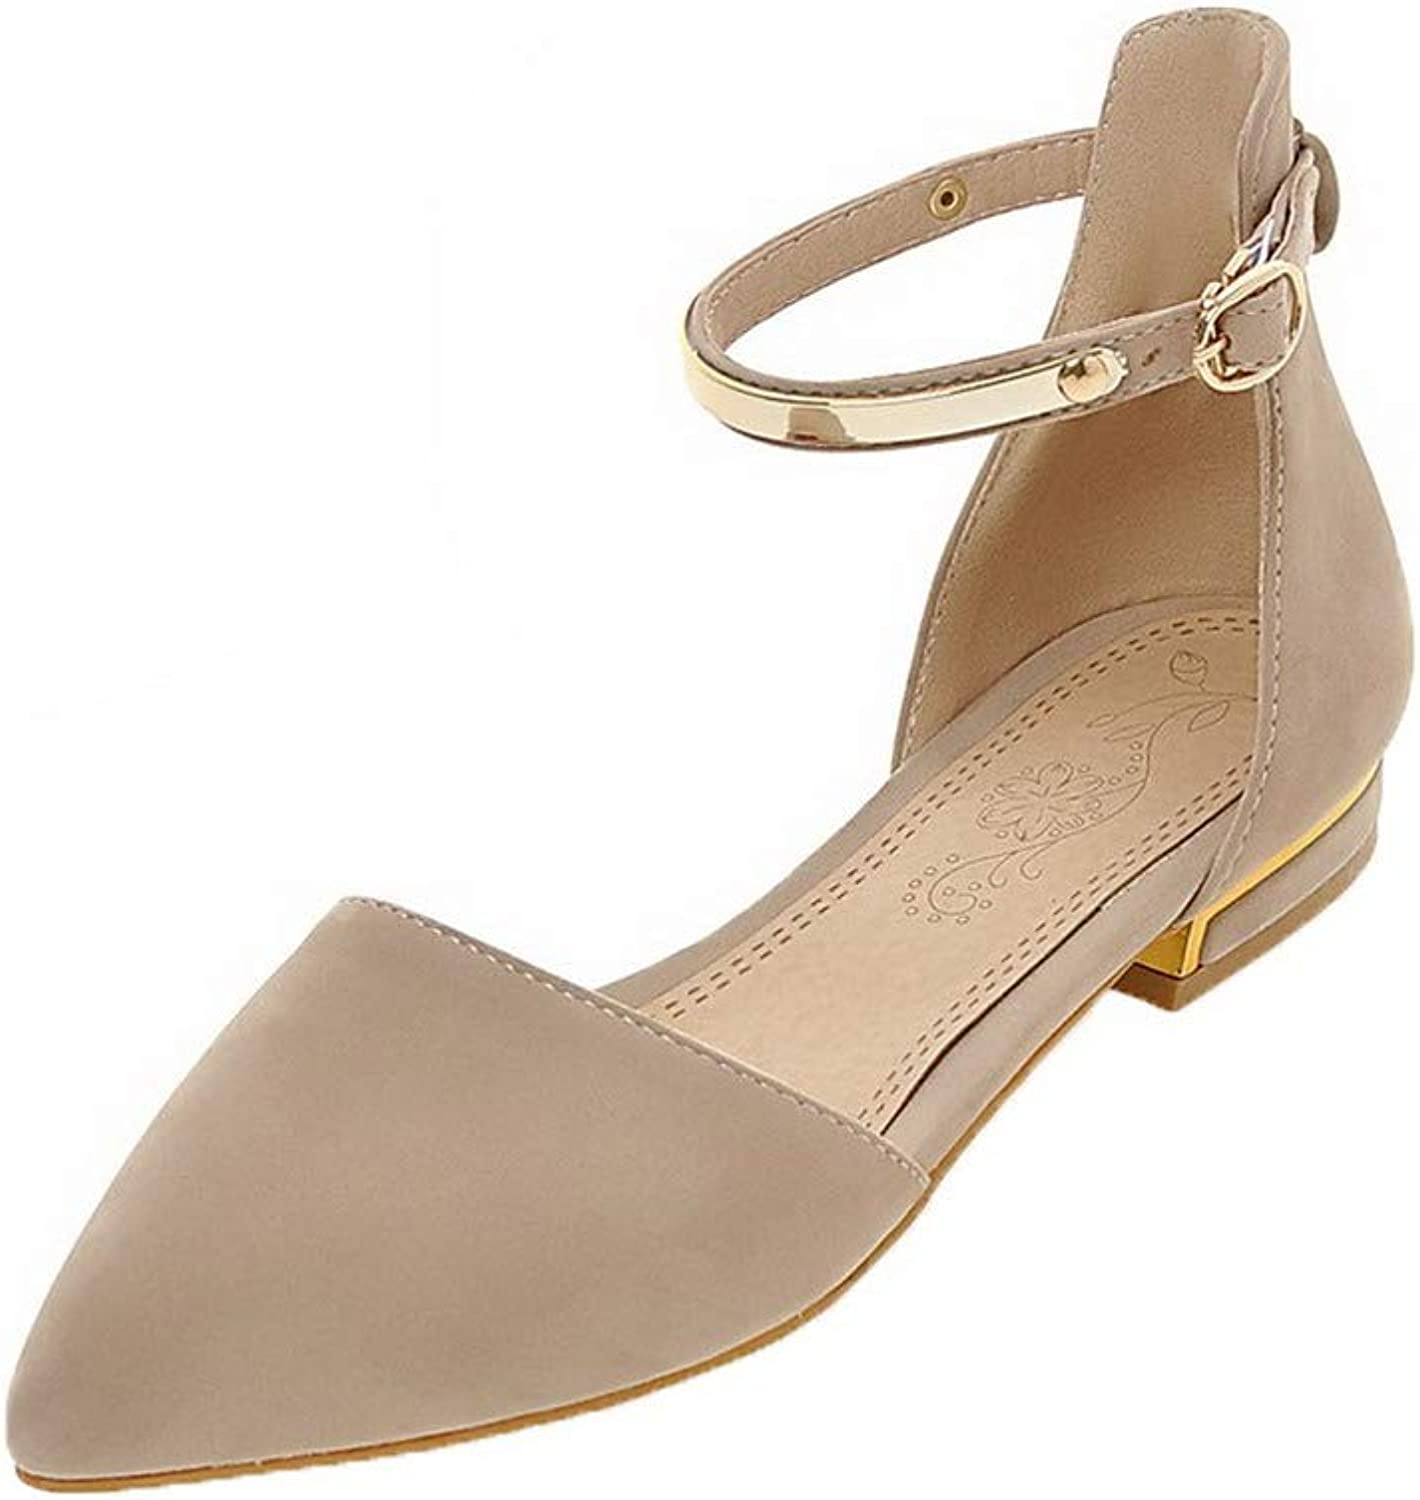 WeenFashion Women's Frosted Closed-Toe Low-Heels Buckle Solid Sandals, AMGLX010170